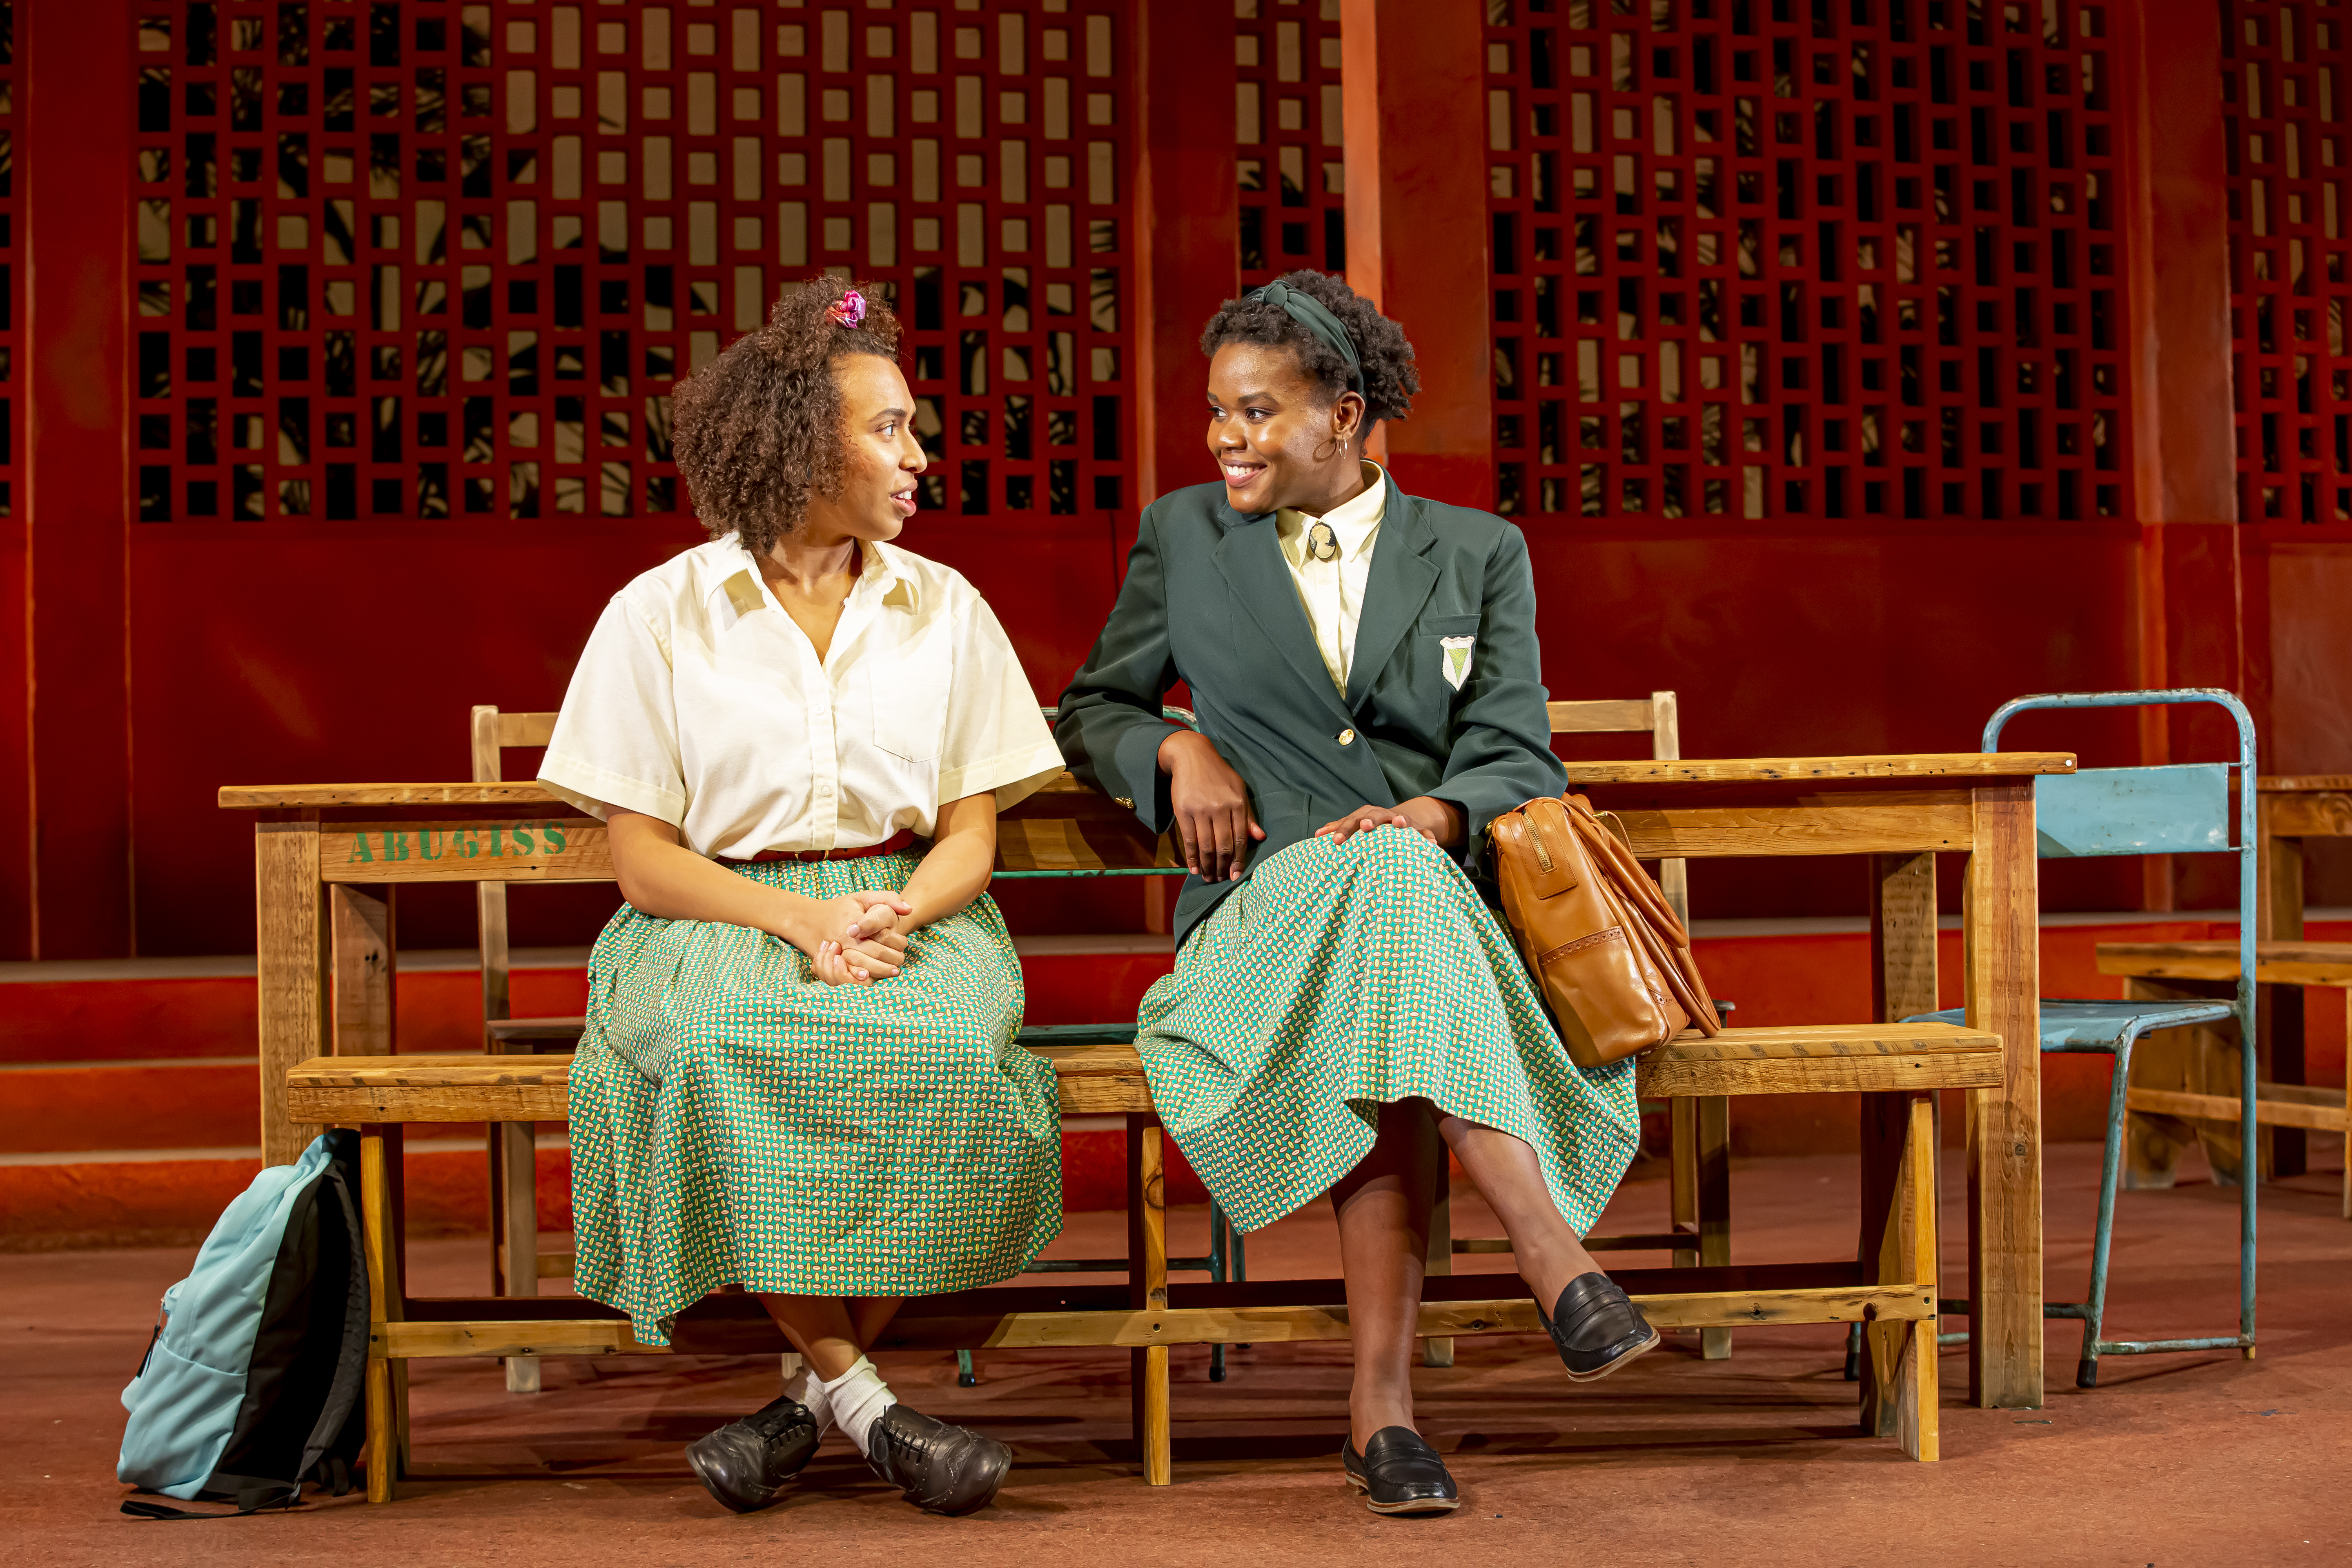 Kyrie Courter(Ericka Boafo) andCiera Dawn(Paulina Sarpong) inSchool Girls; Or, The African Mean Girls PlaybyJocelyn Bioh, directed byLili-Anne Brownat Goodman Theatre (July 30-August 29, 2021). Photo by Flint Chaney.